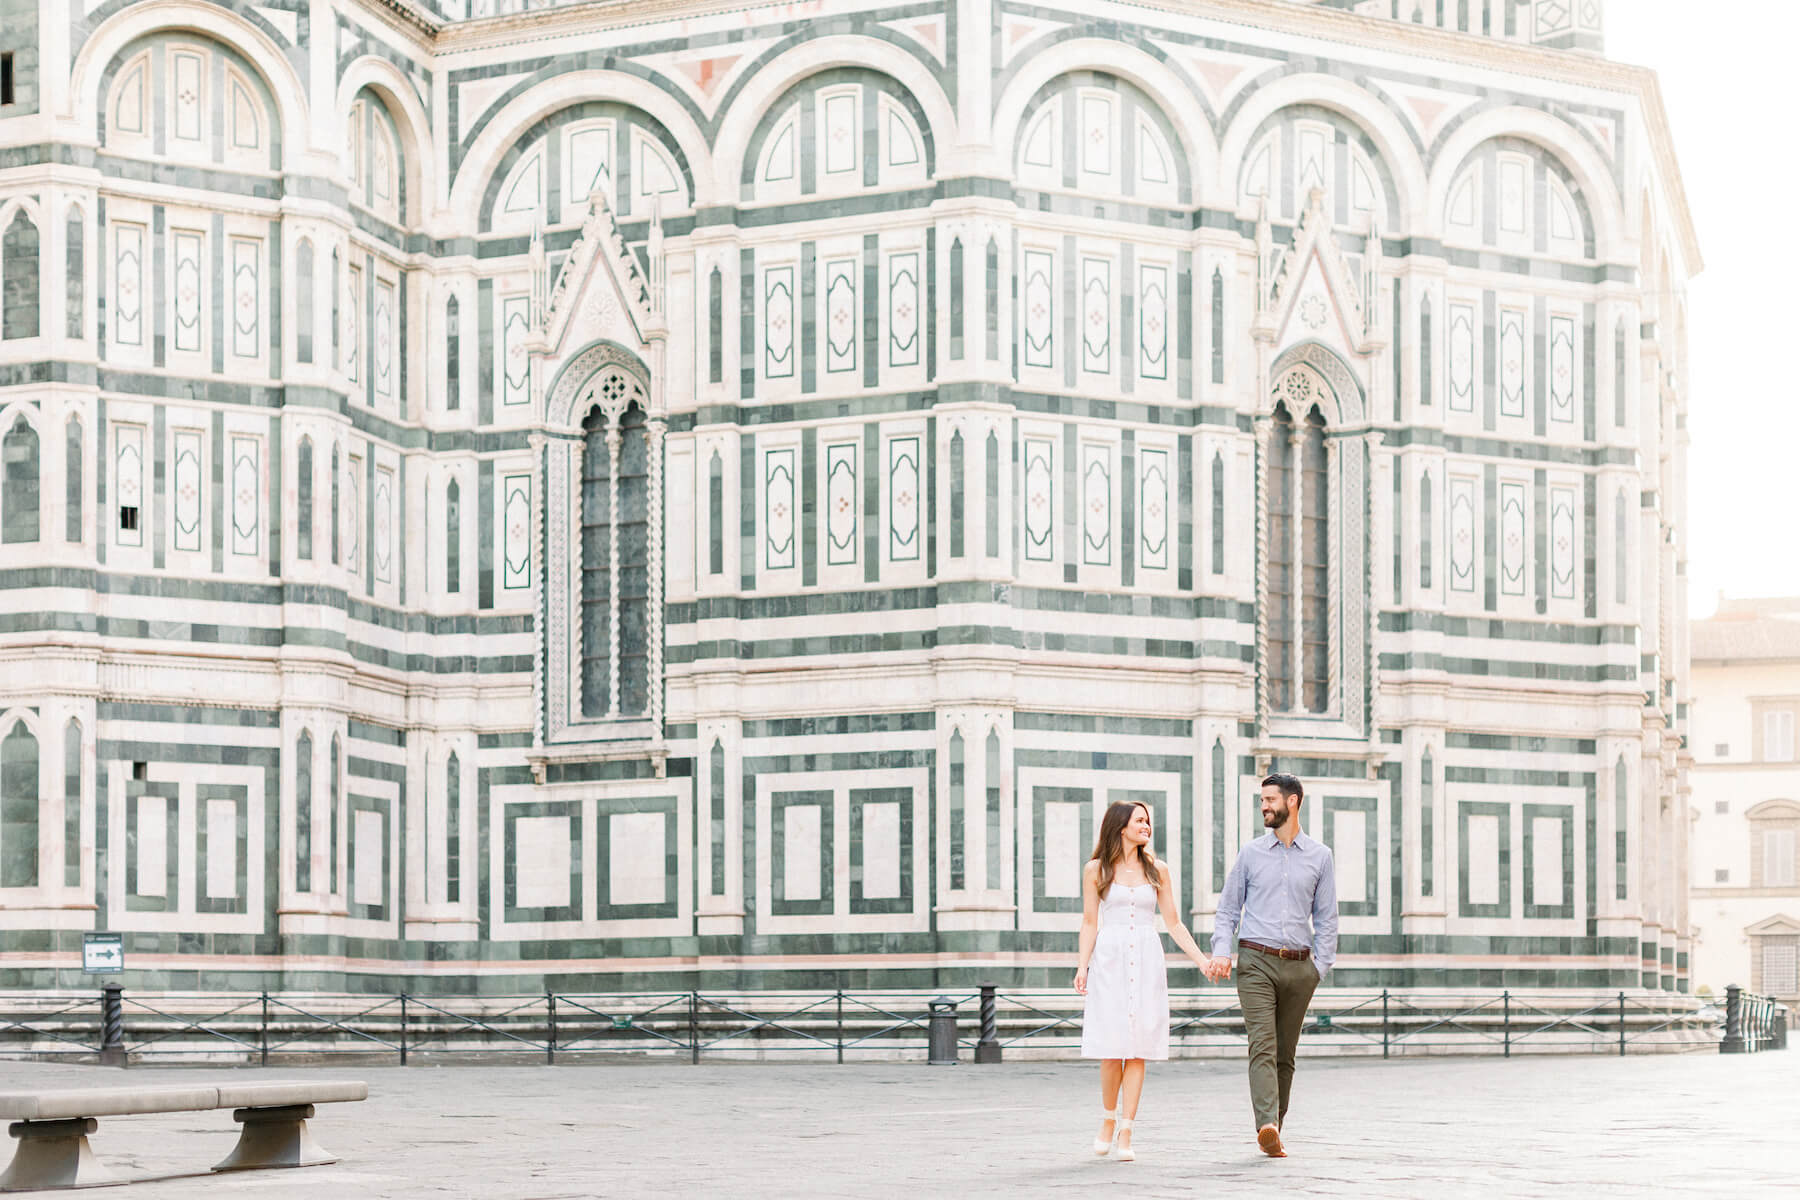 Top 10 Non-Touristy Florence Tips From Locals